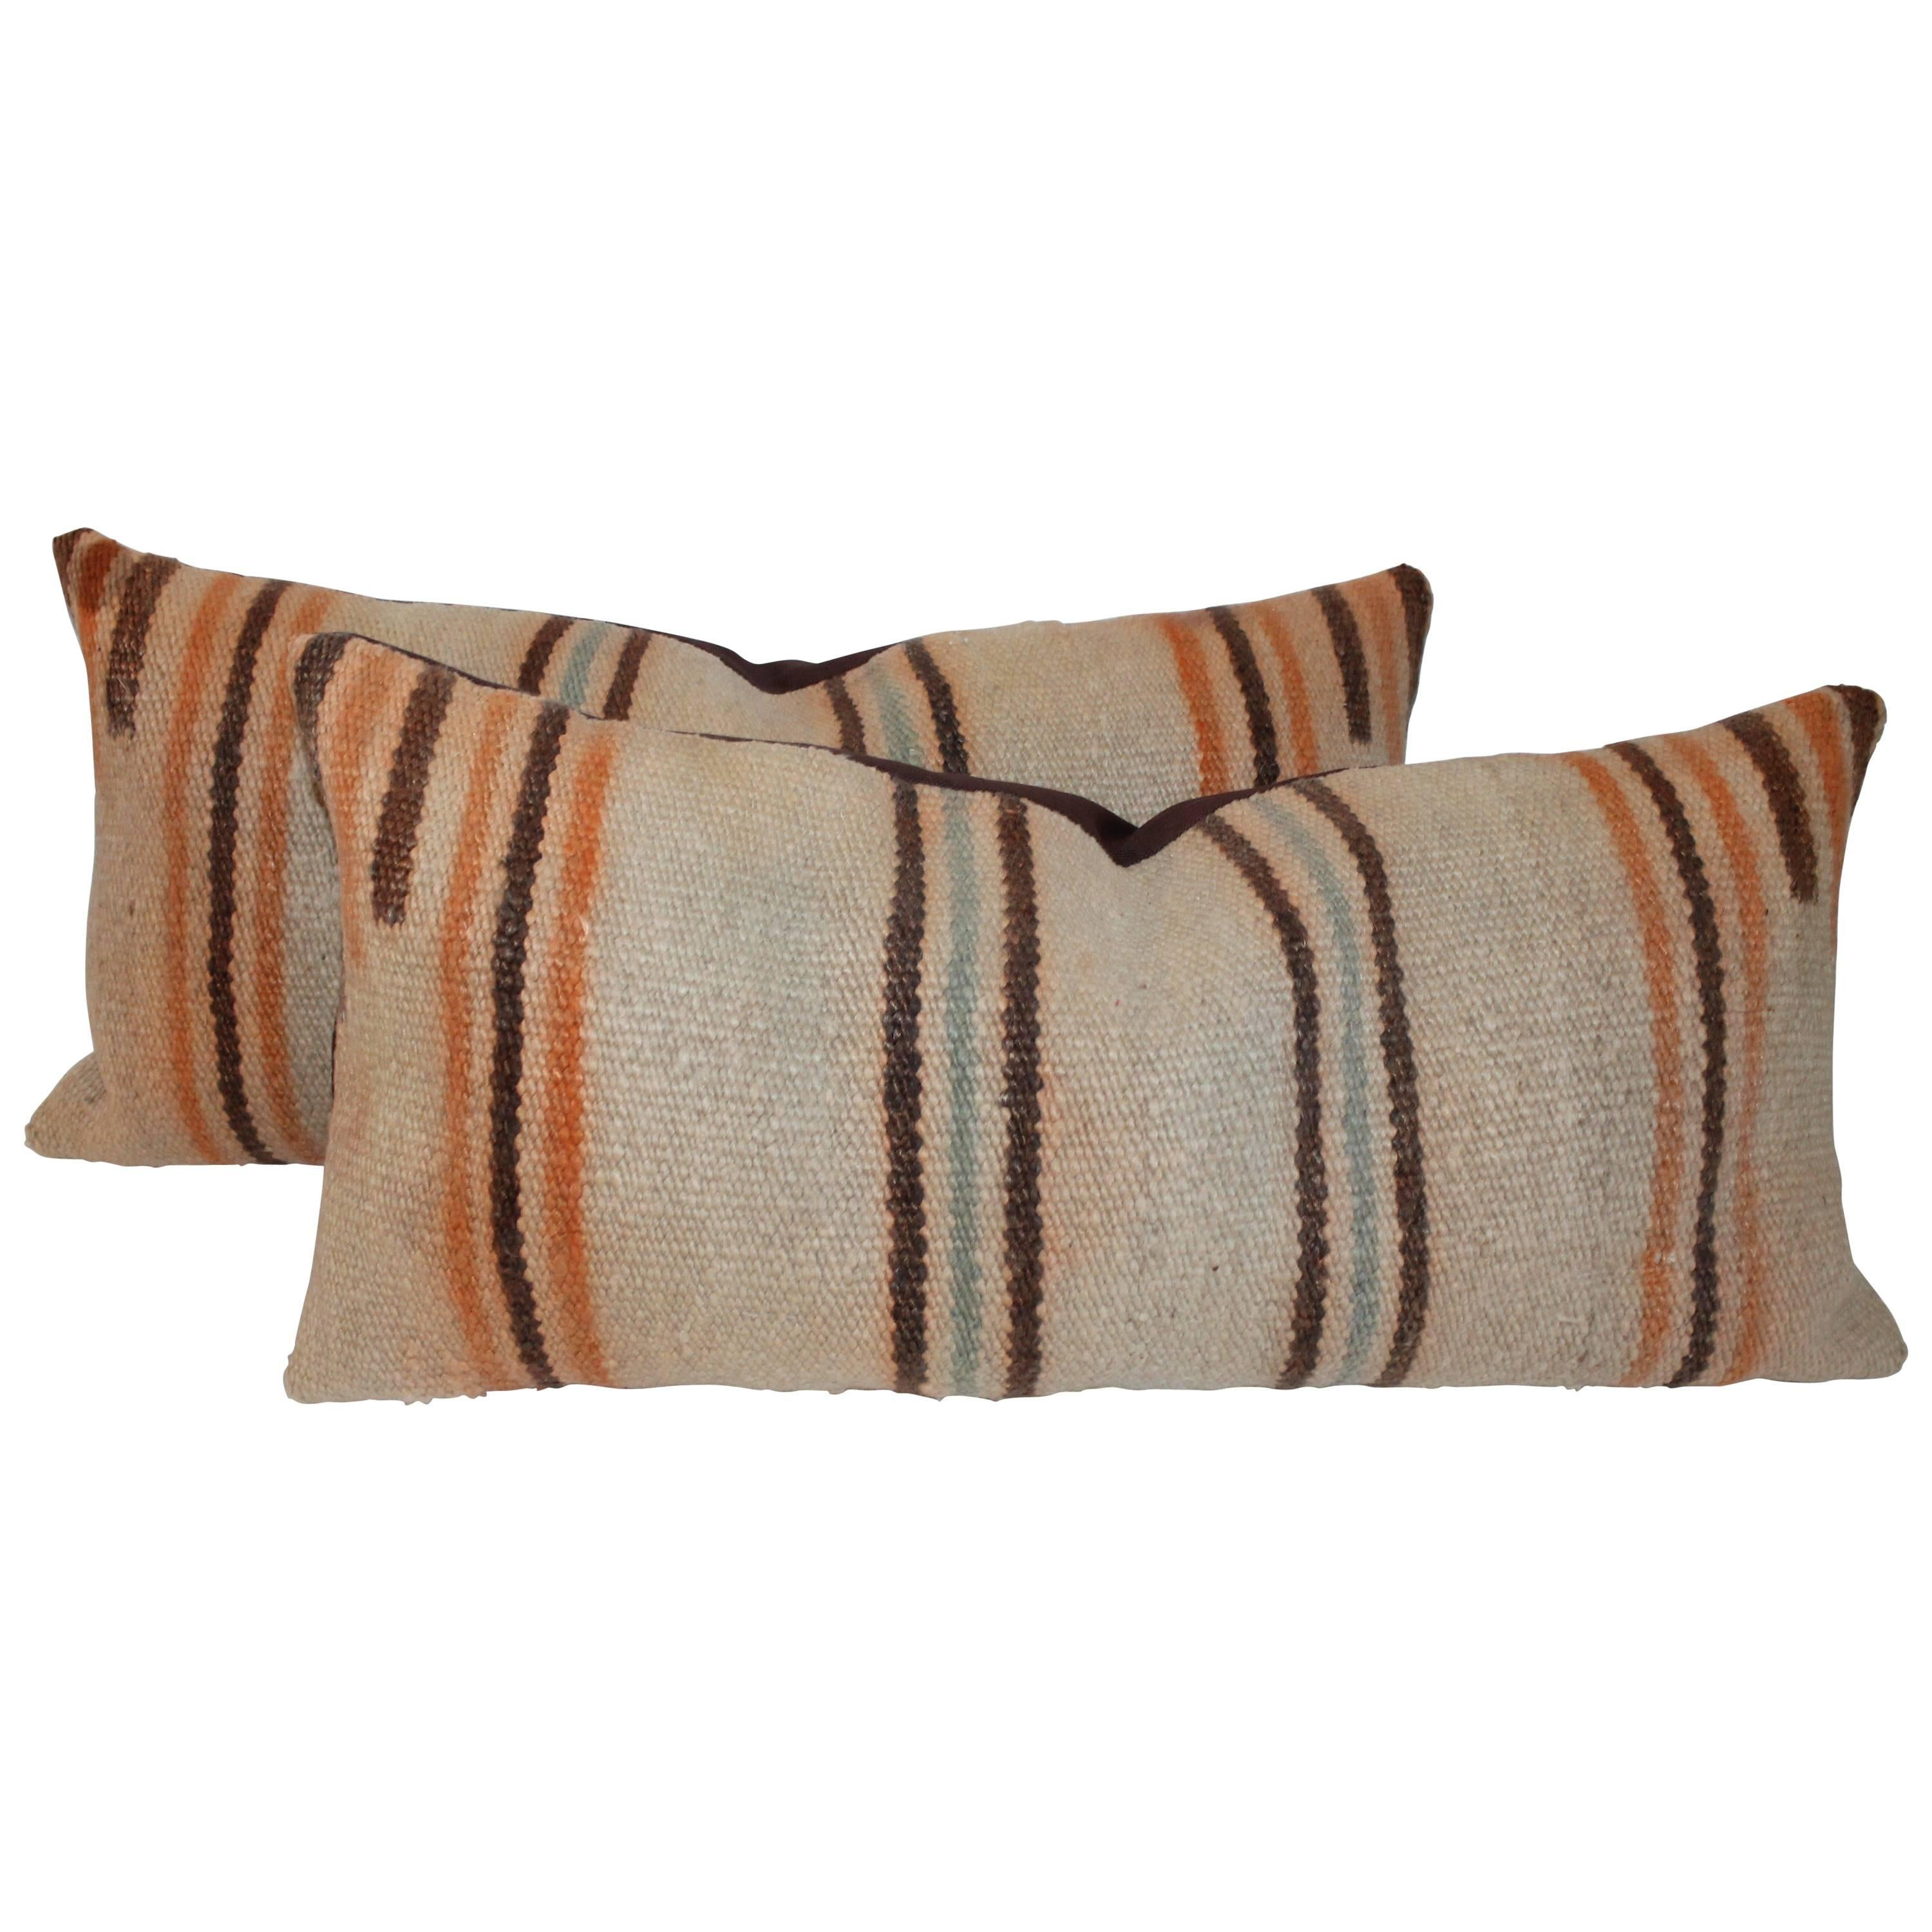 Navajo Weaving Flying Geese Pillows